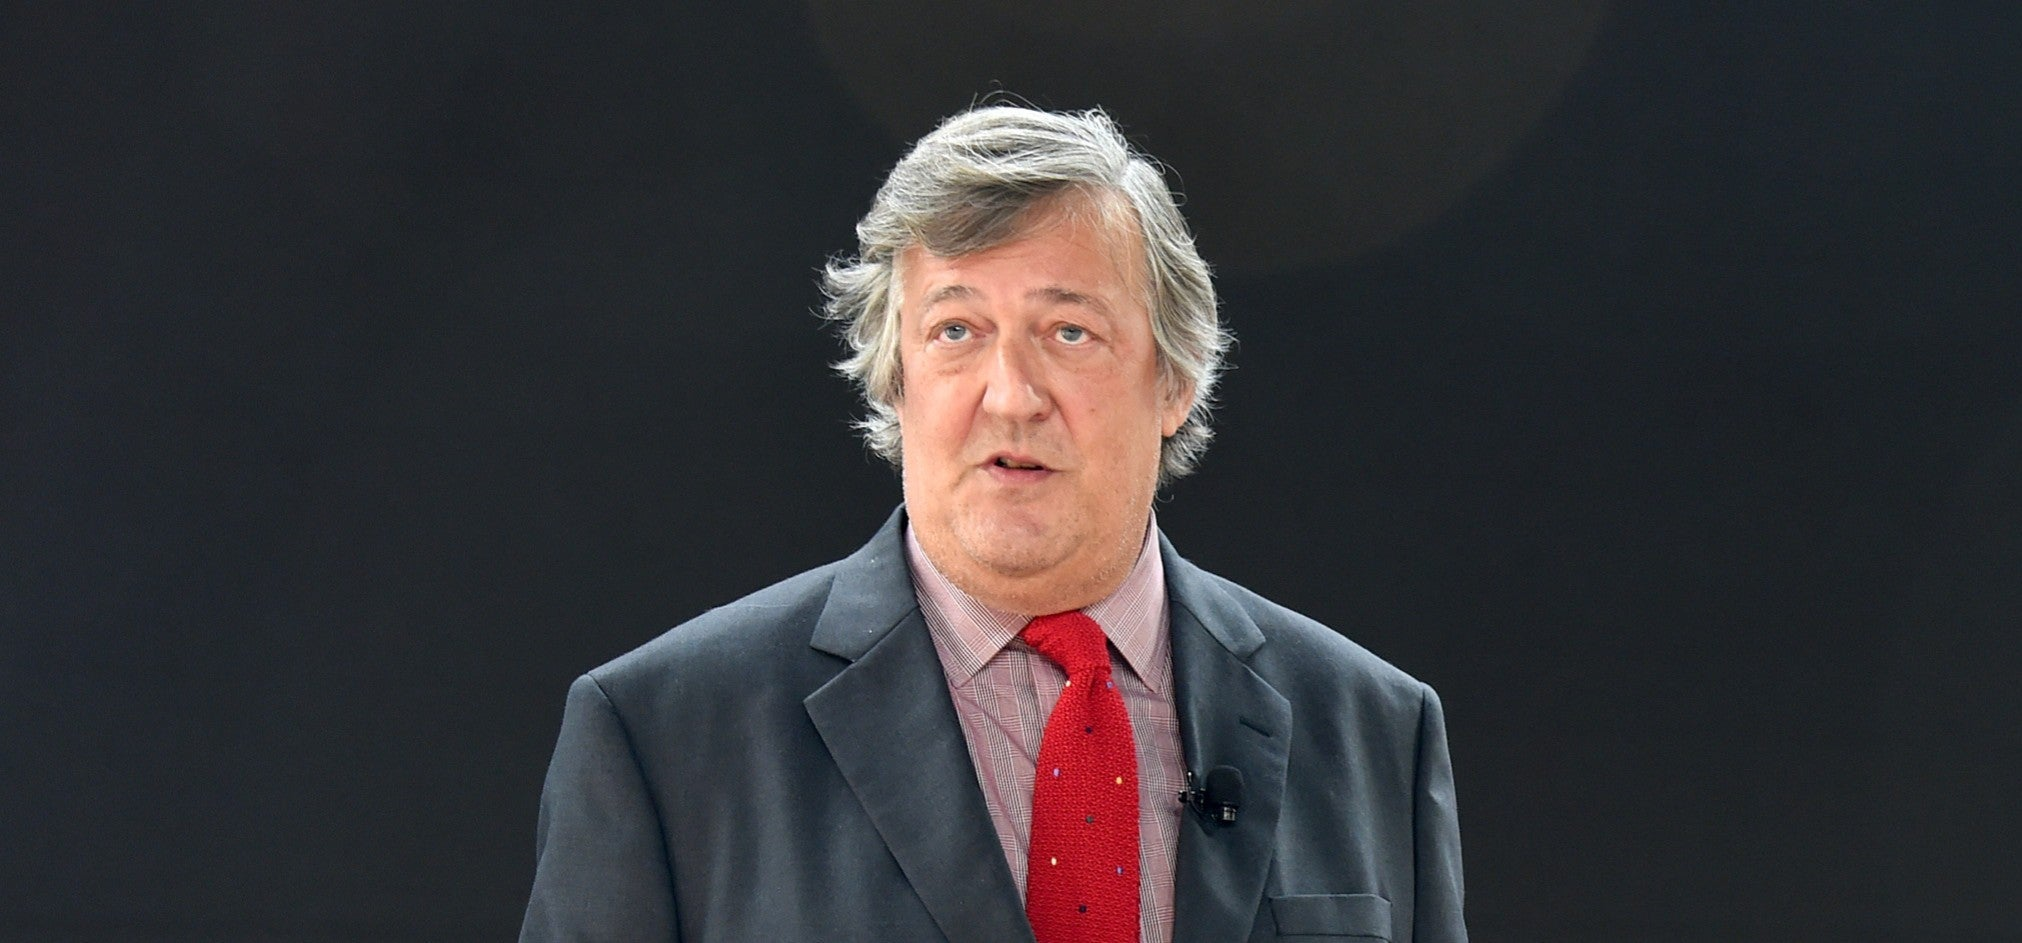 Stephen Fry opens up about the 'terrible' moment doctors told him he might die